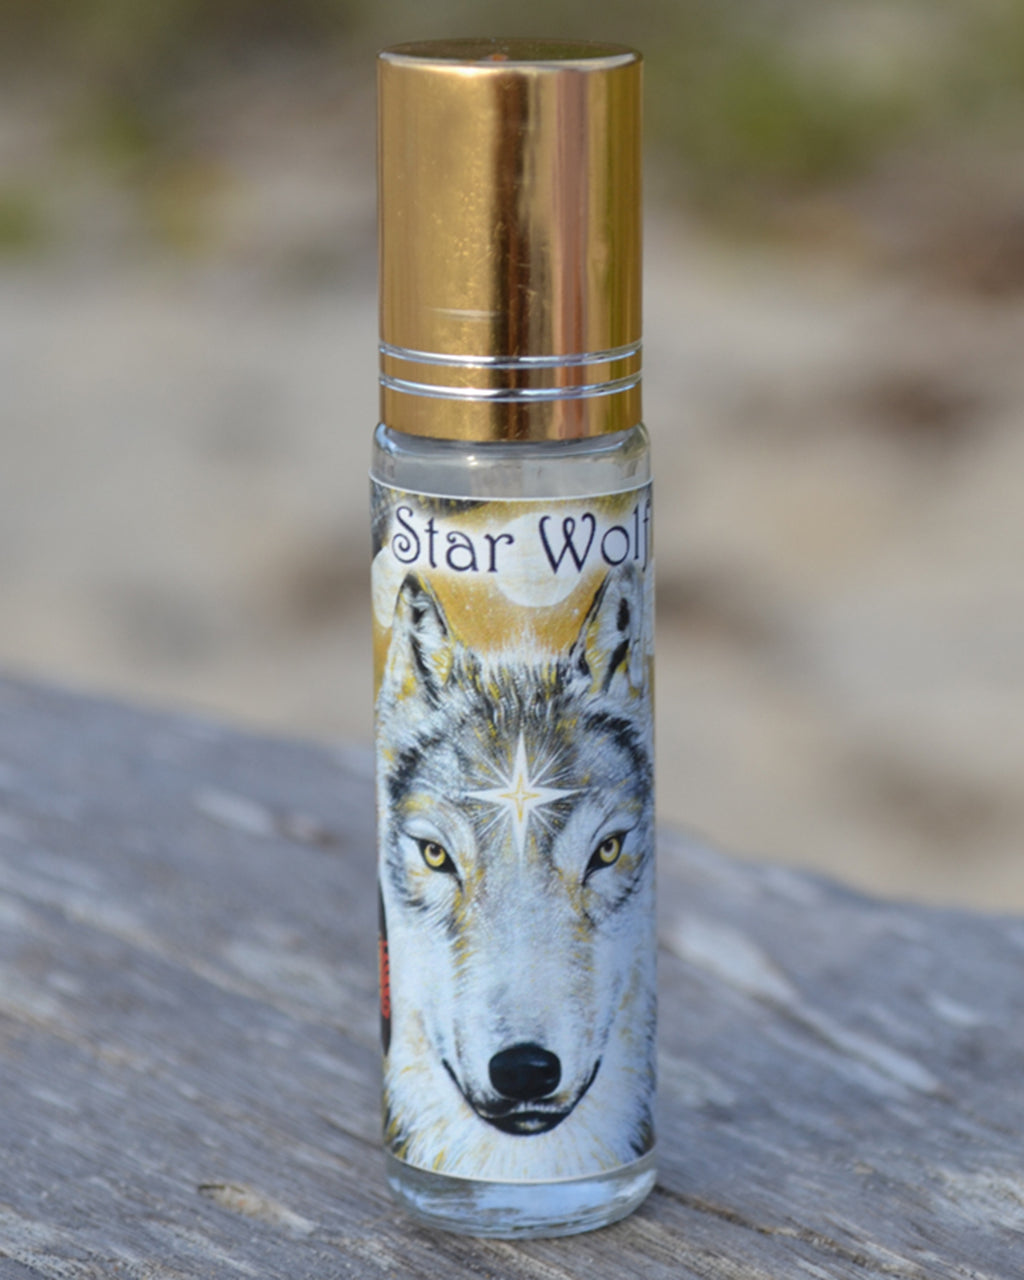 """STAR WOLF"" ESSENTIAL OIL PERFUME"